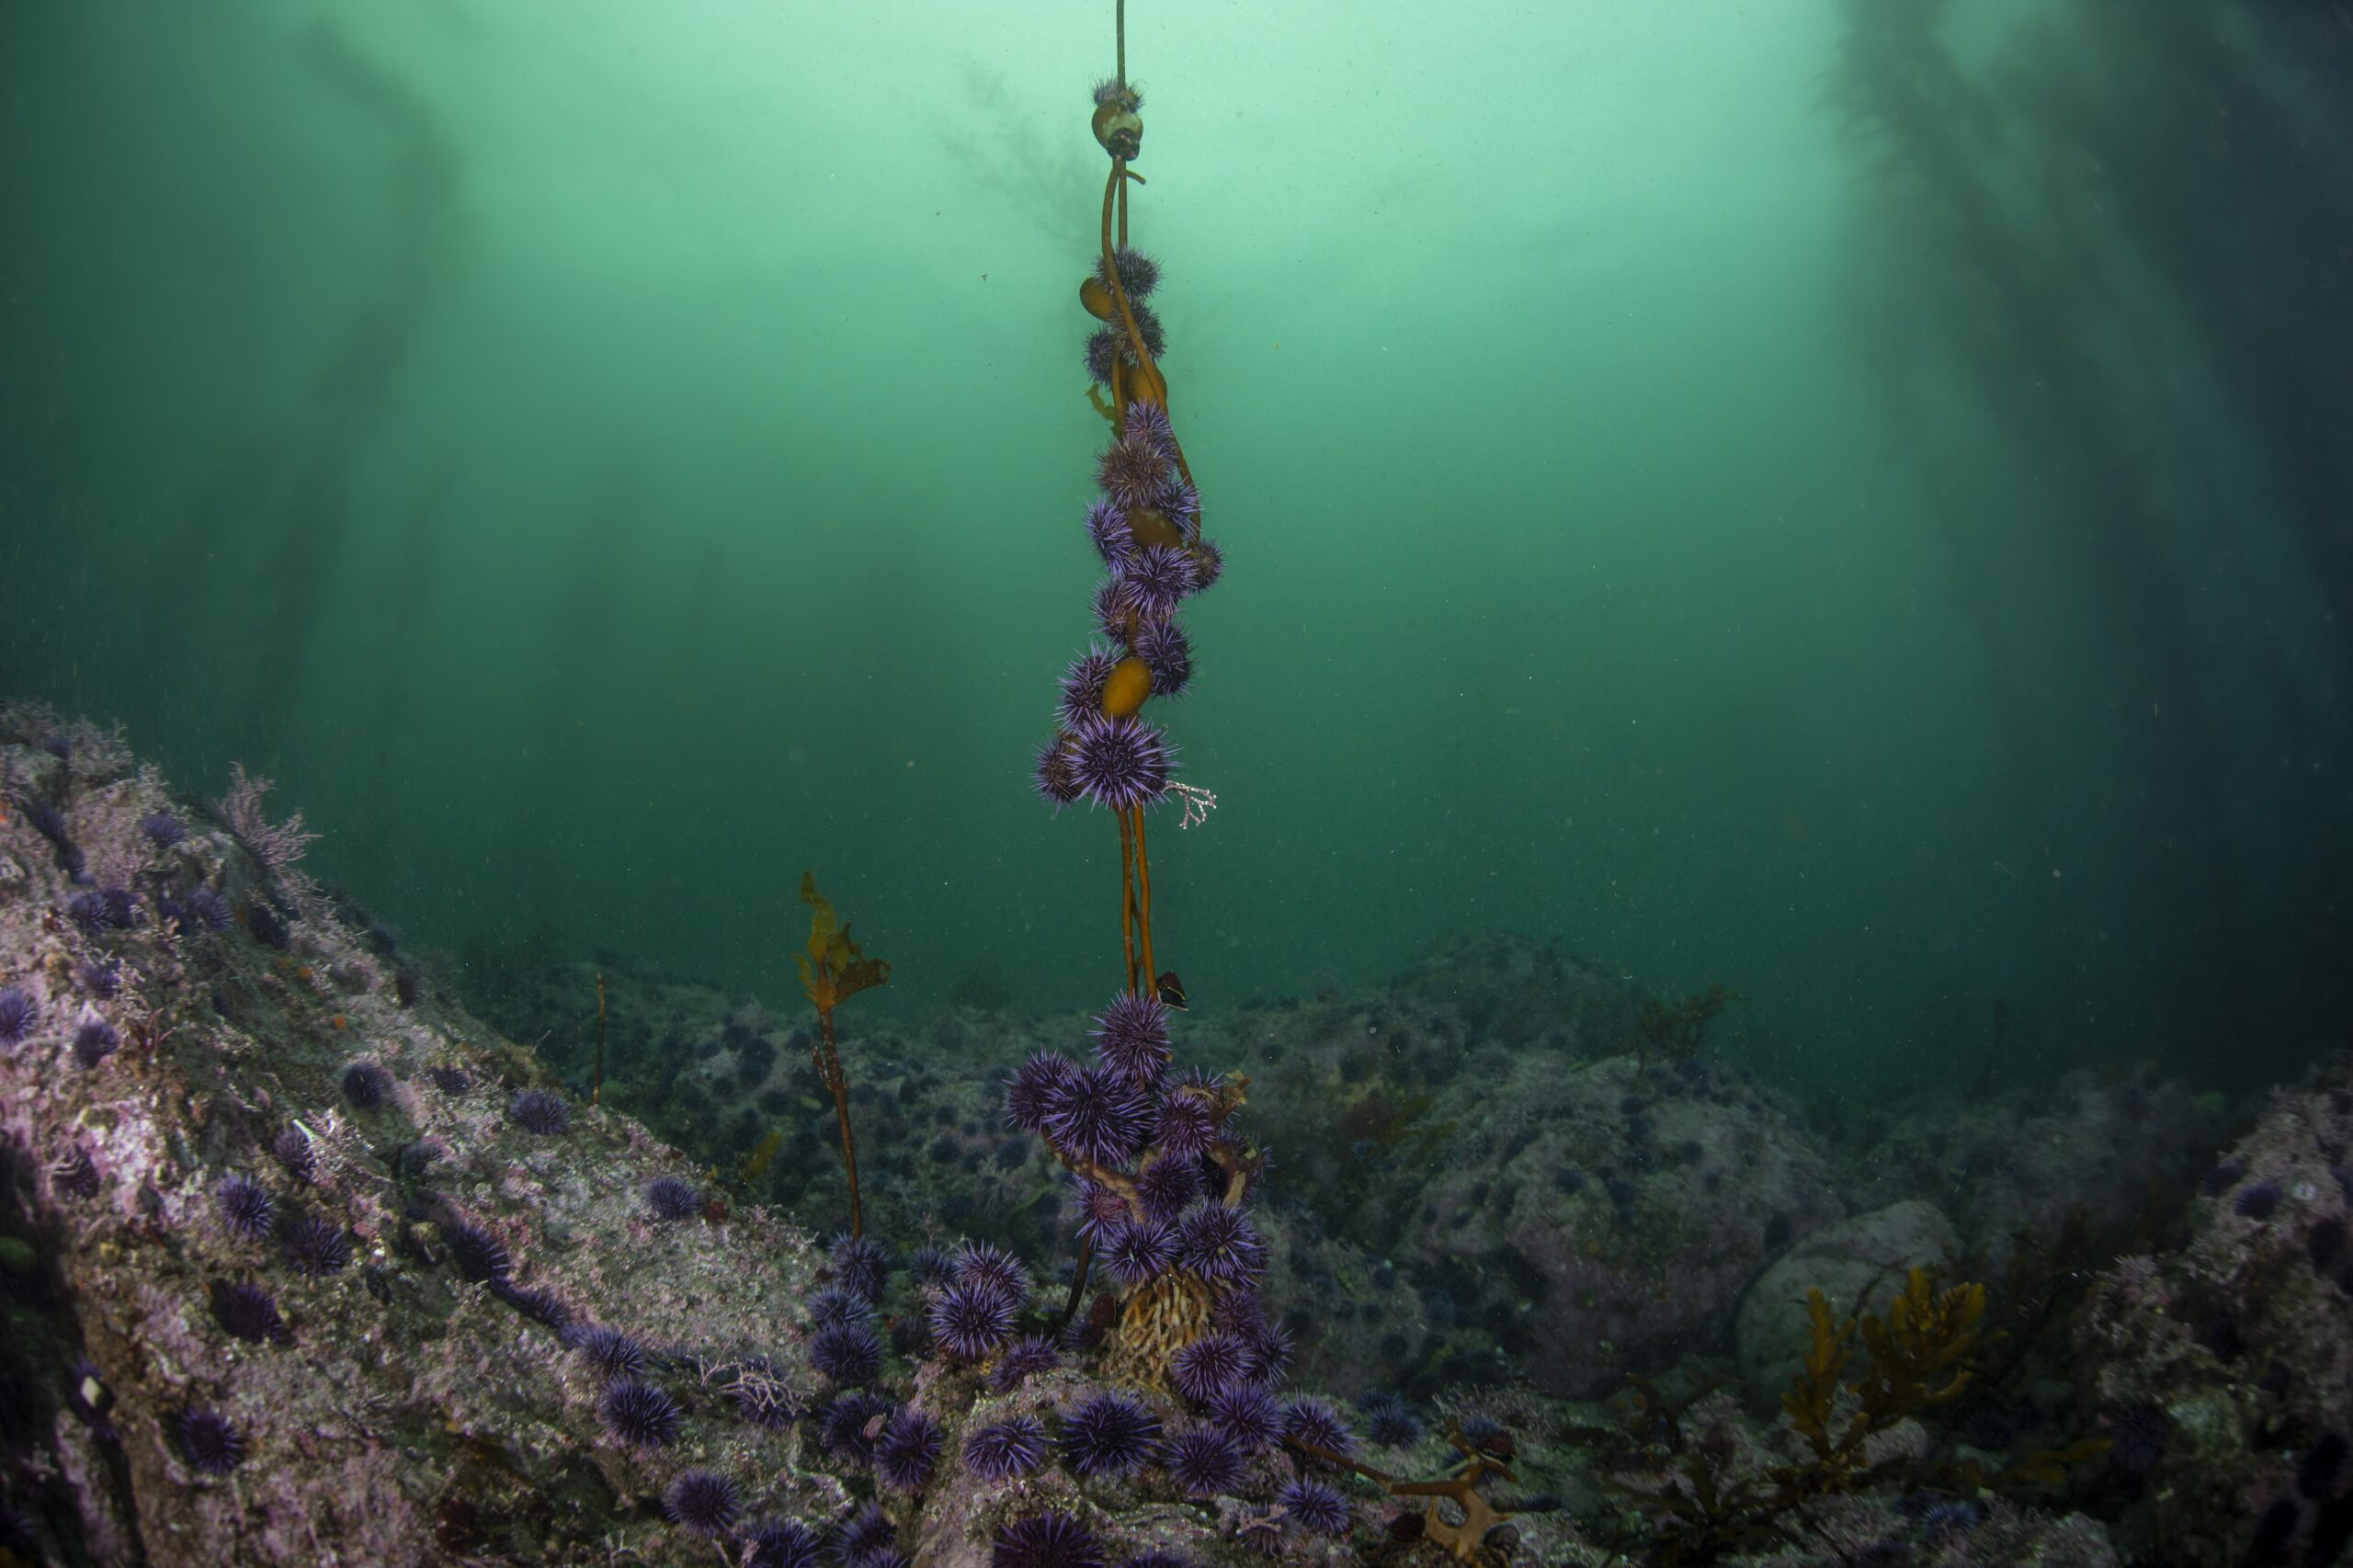 Purple urchins consume the remainder of a small giant kelp. In the background, an urchin barren has cleared the majority of nearby kelp and algae leaving an environment less hospitable for many species. Credit: Michael Langhans